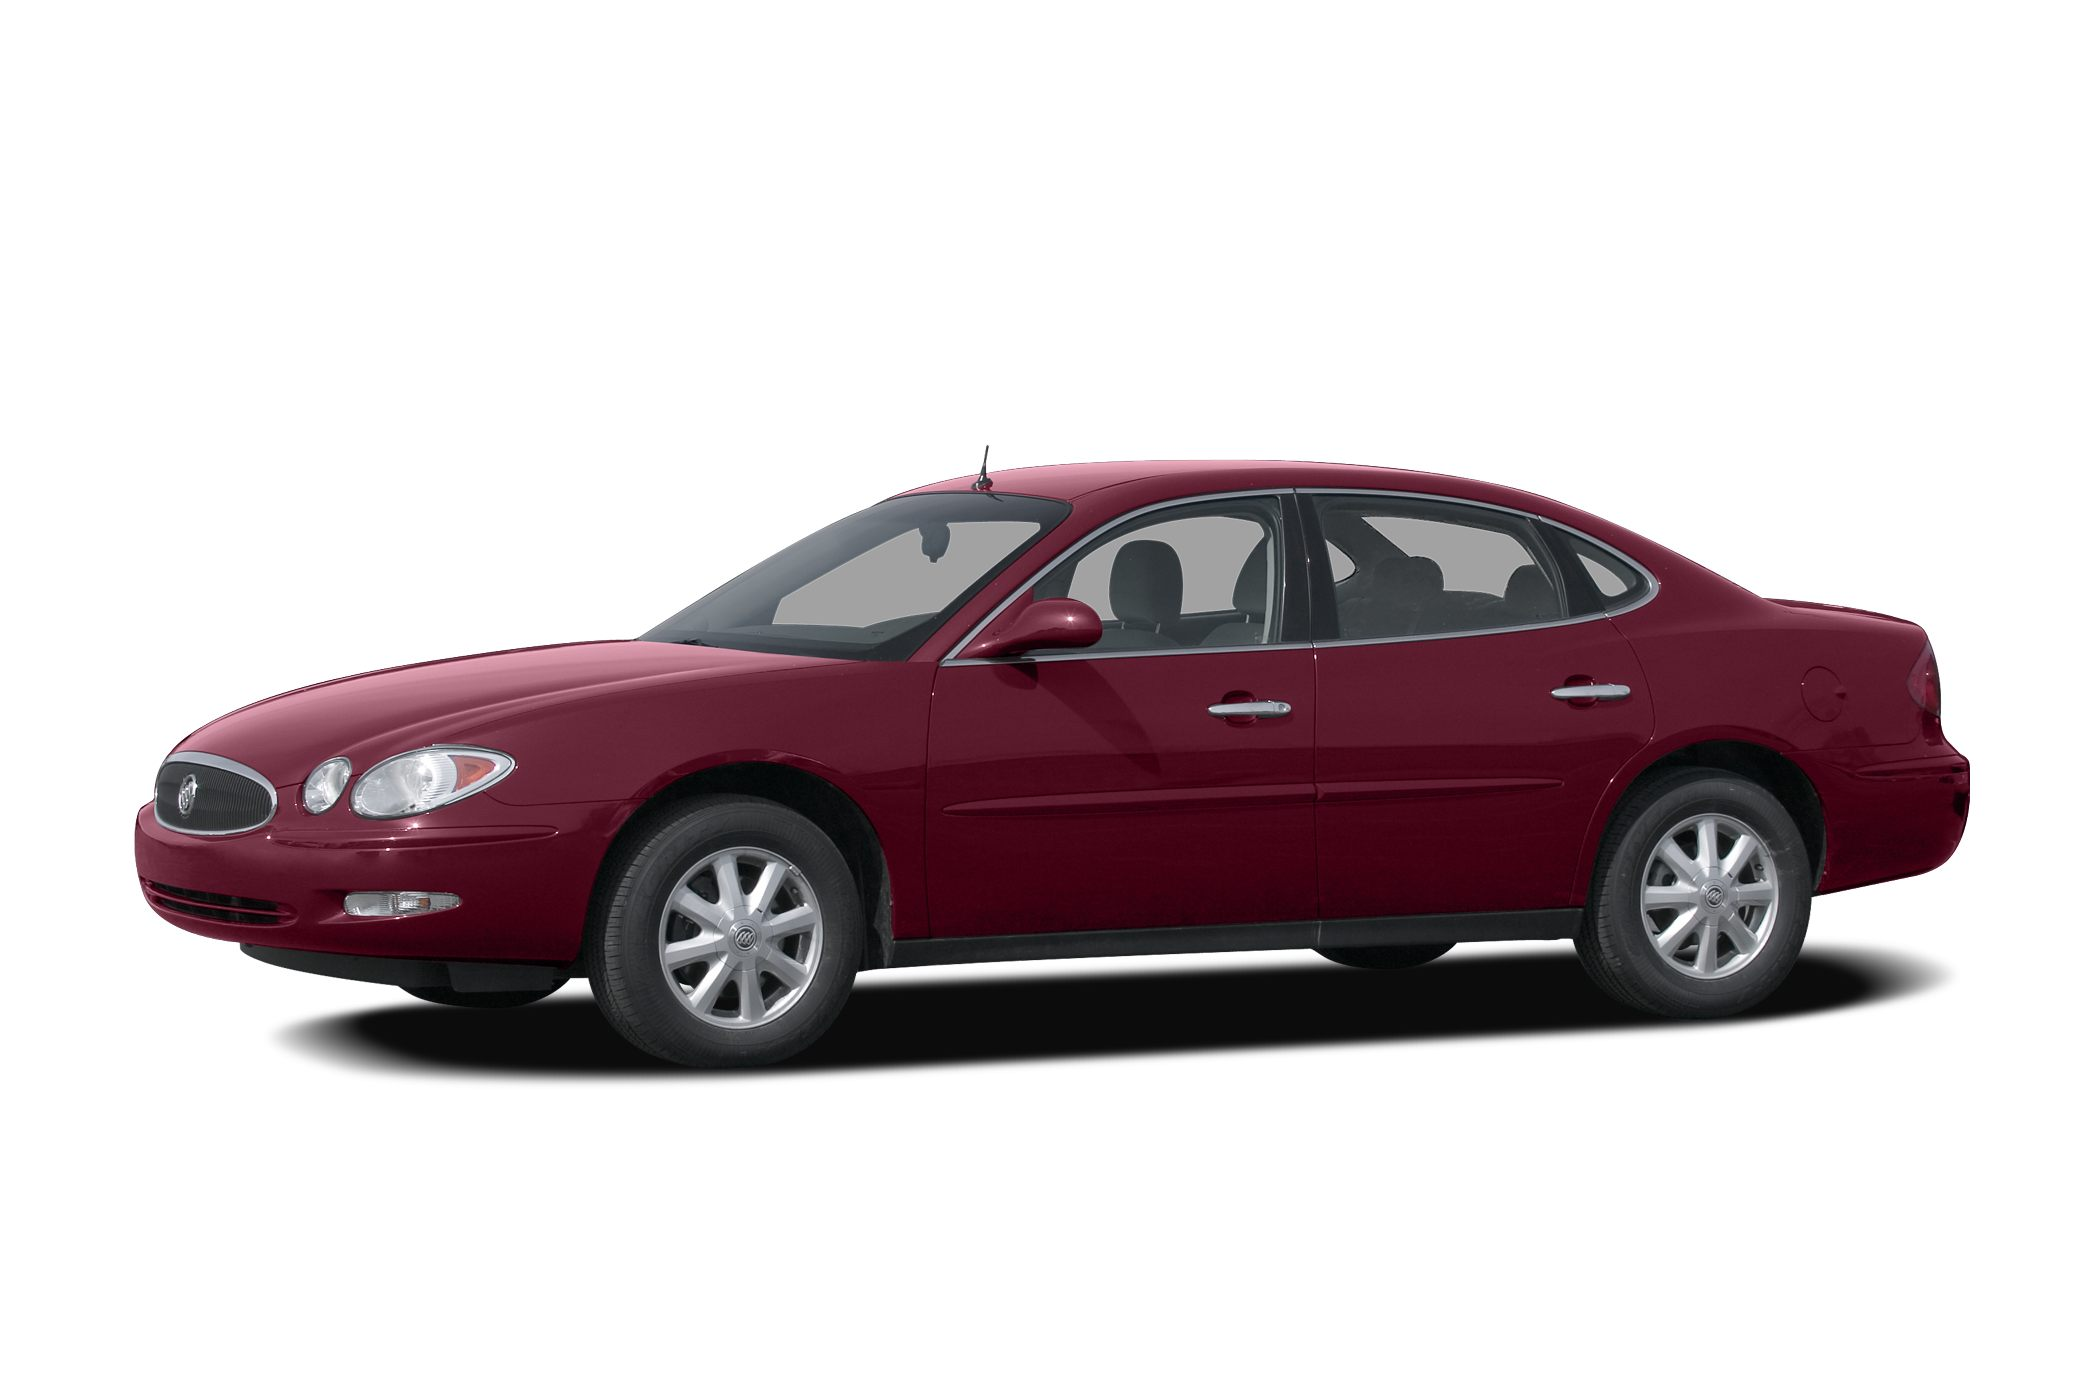 2009 Buick LaCrosse CXL Sedan for sale in Brookings for $11,800 with 76,340 miles.